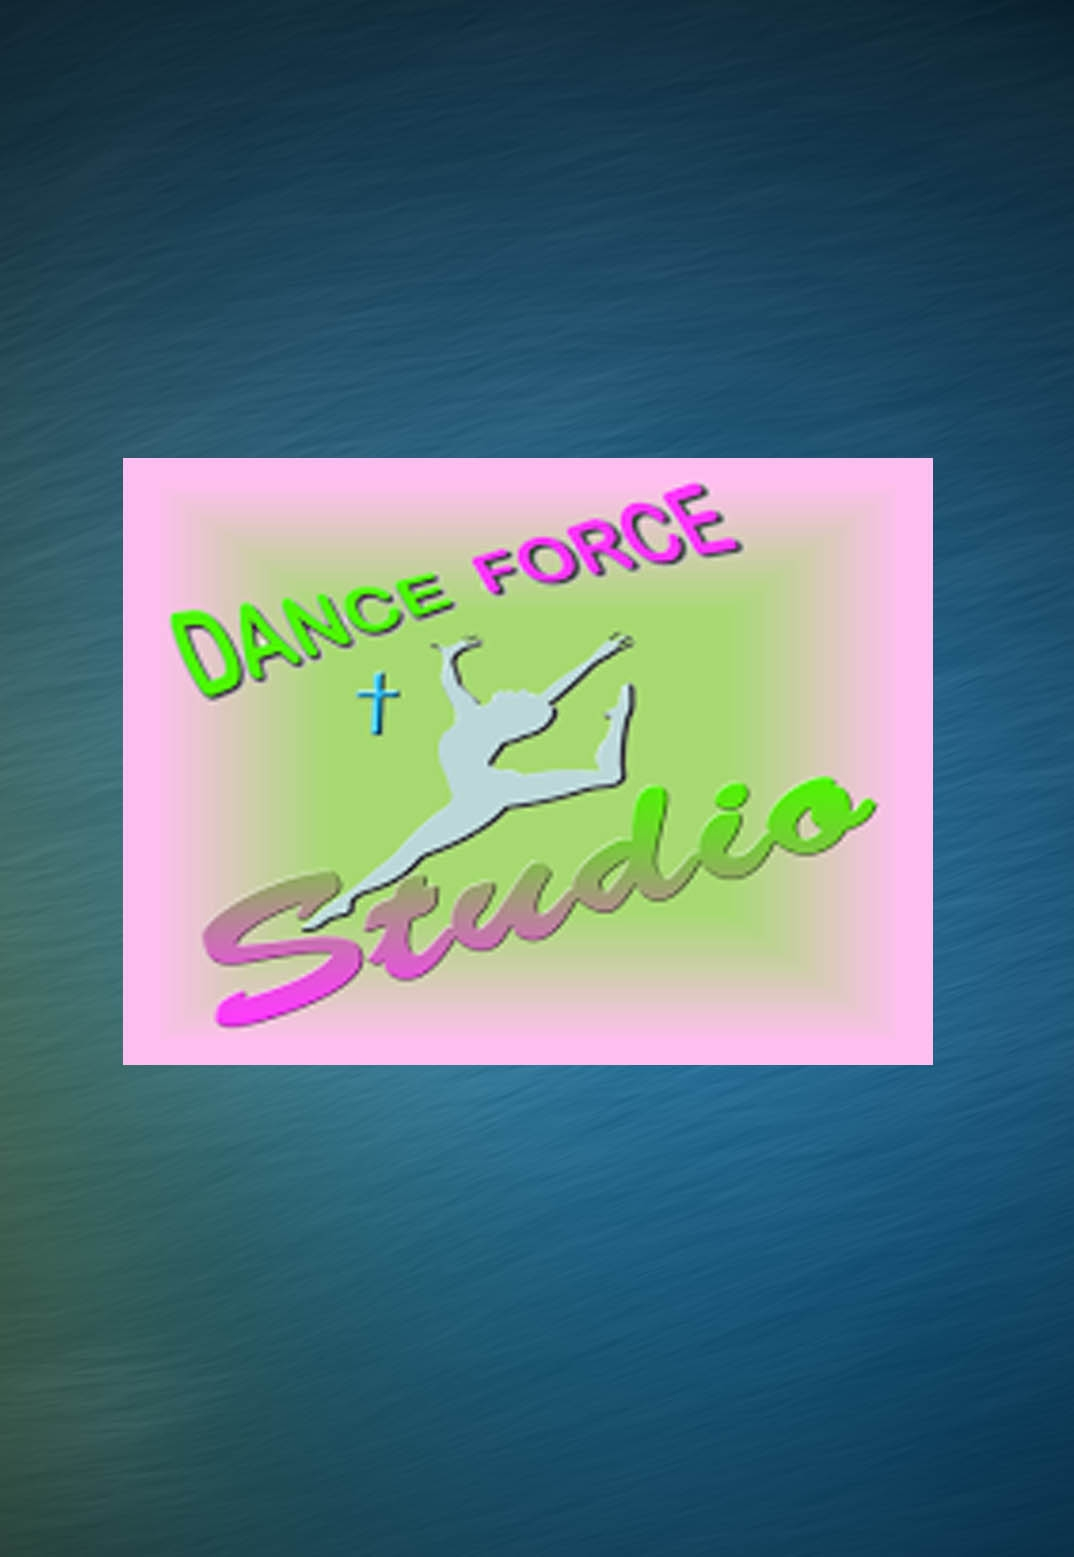 Dance Force Studios 2015- 9:30 AM Show Only